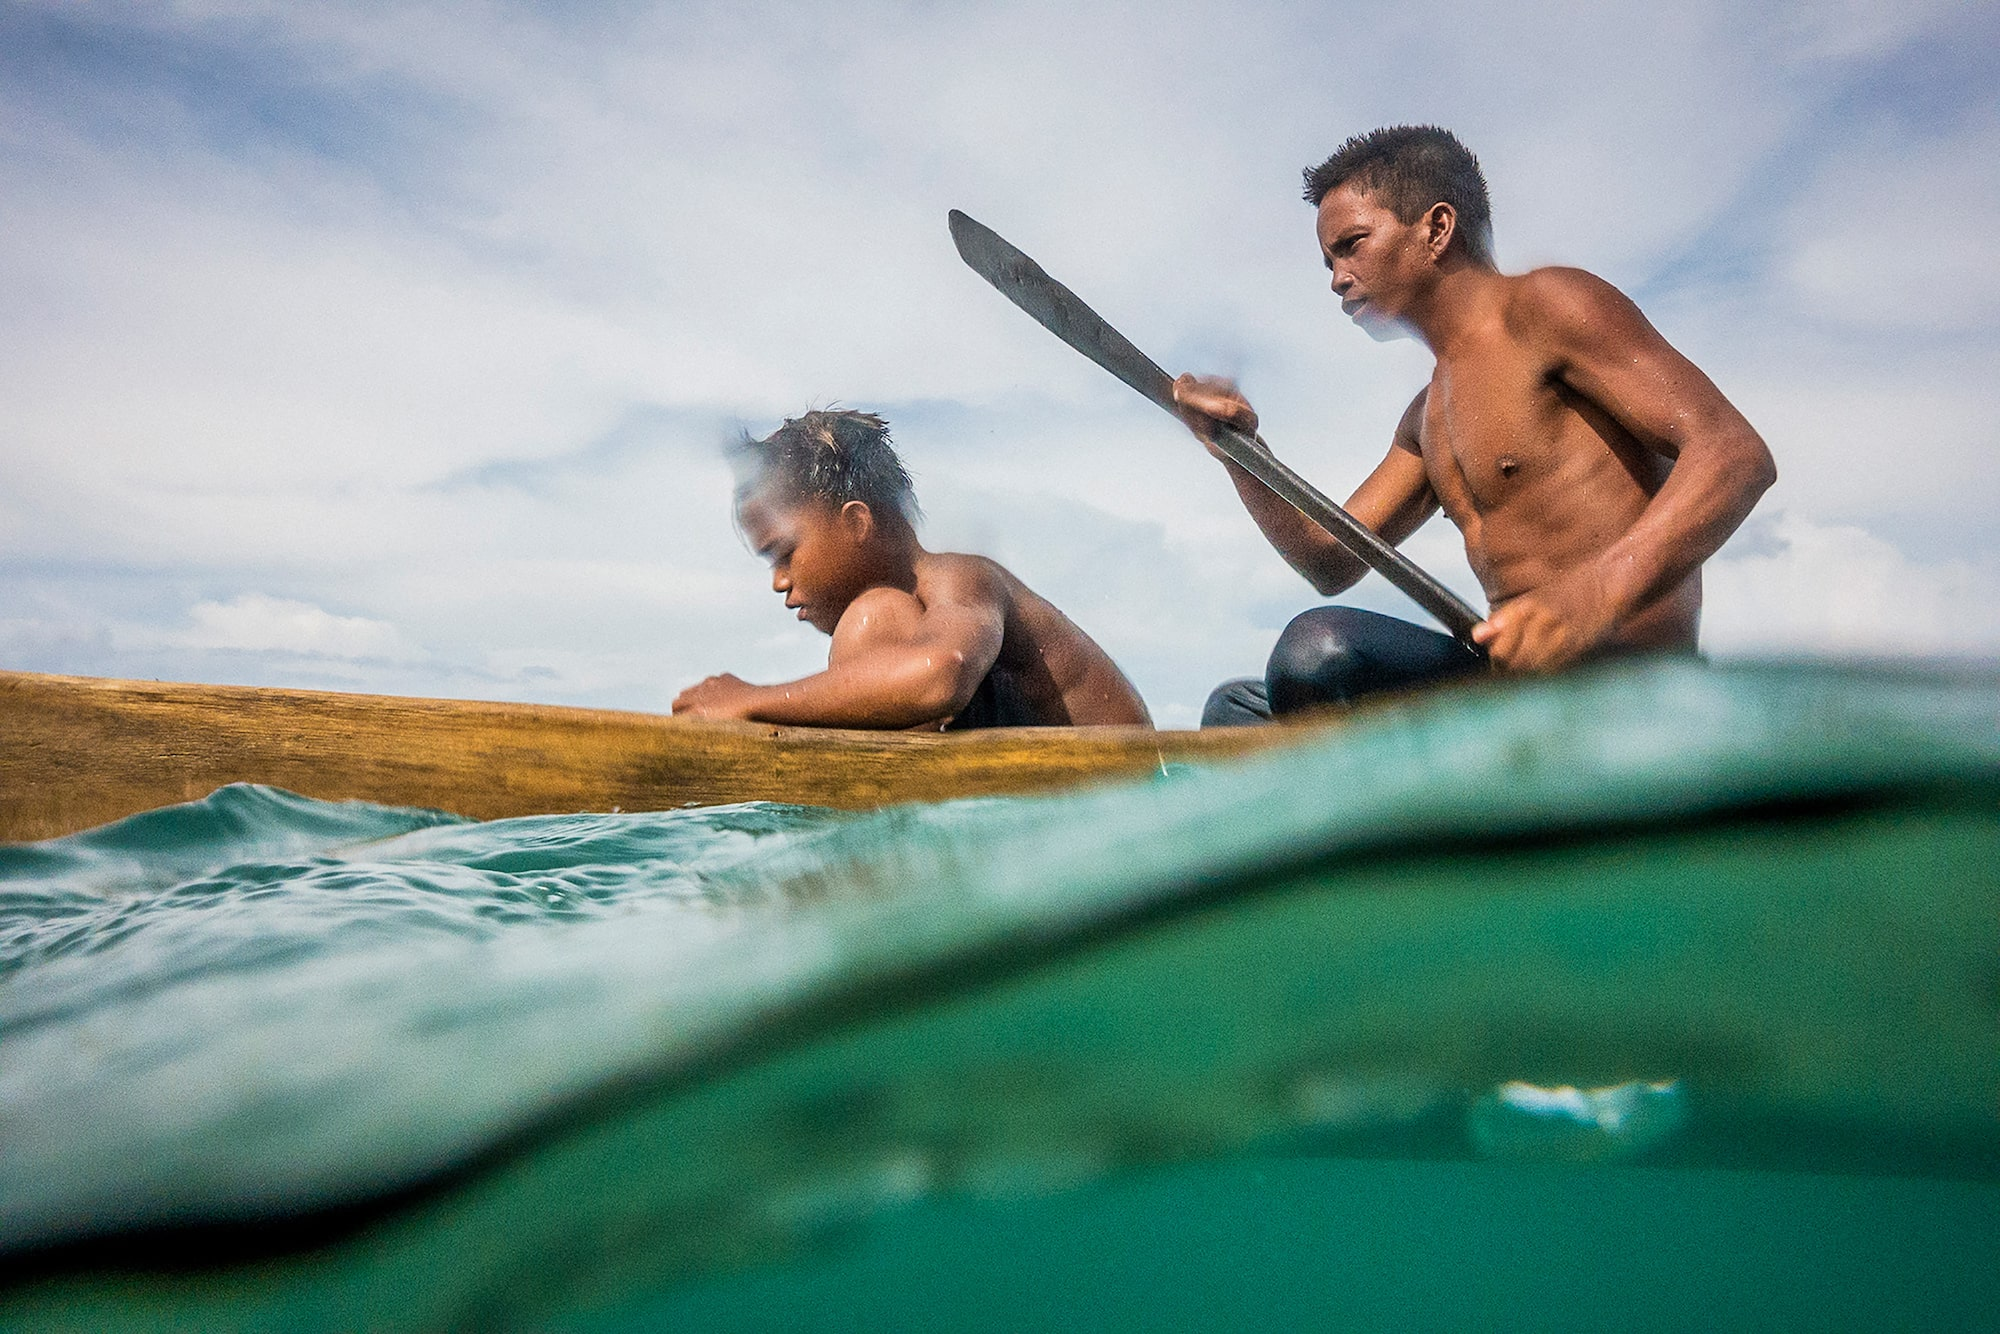 marek arcimowicz sony rx100V 2 young lads on canoes paddling through the ocean